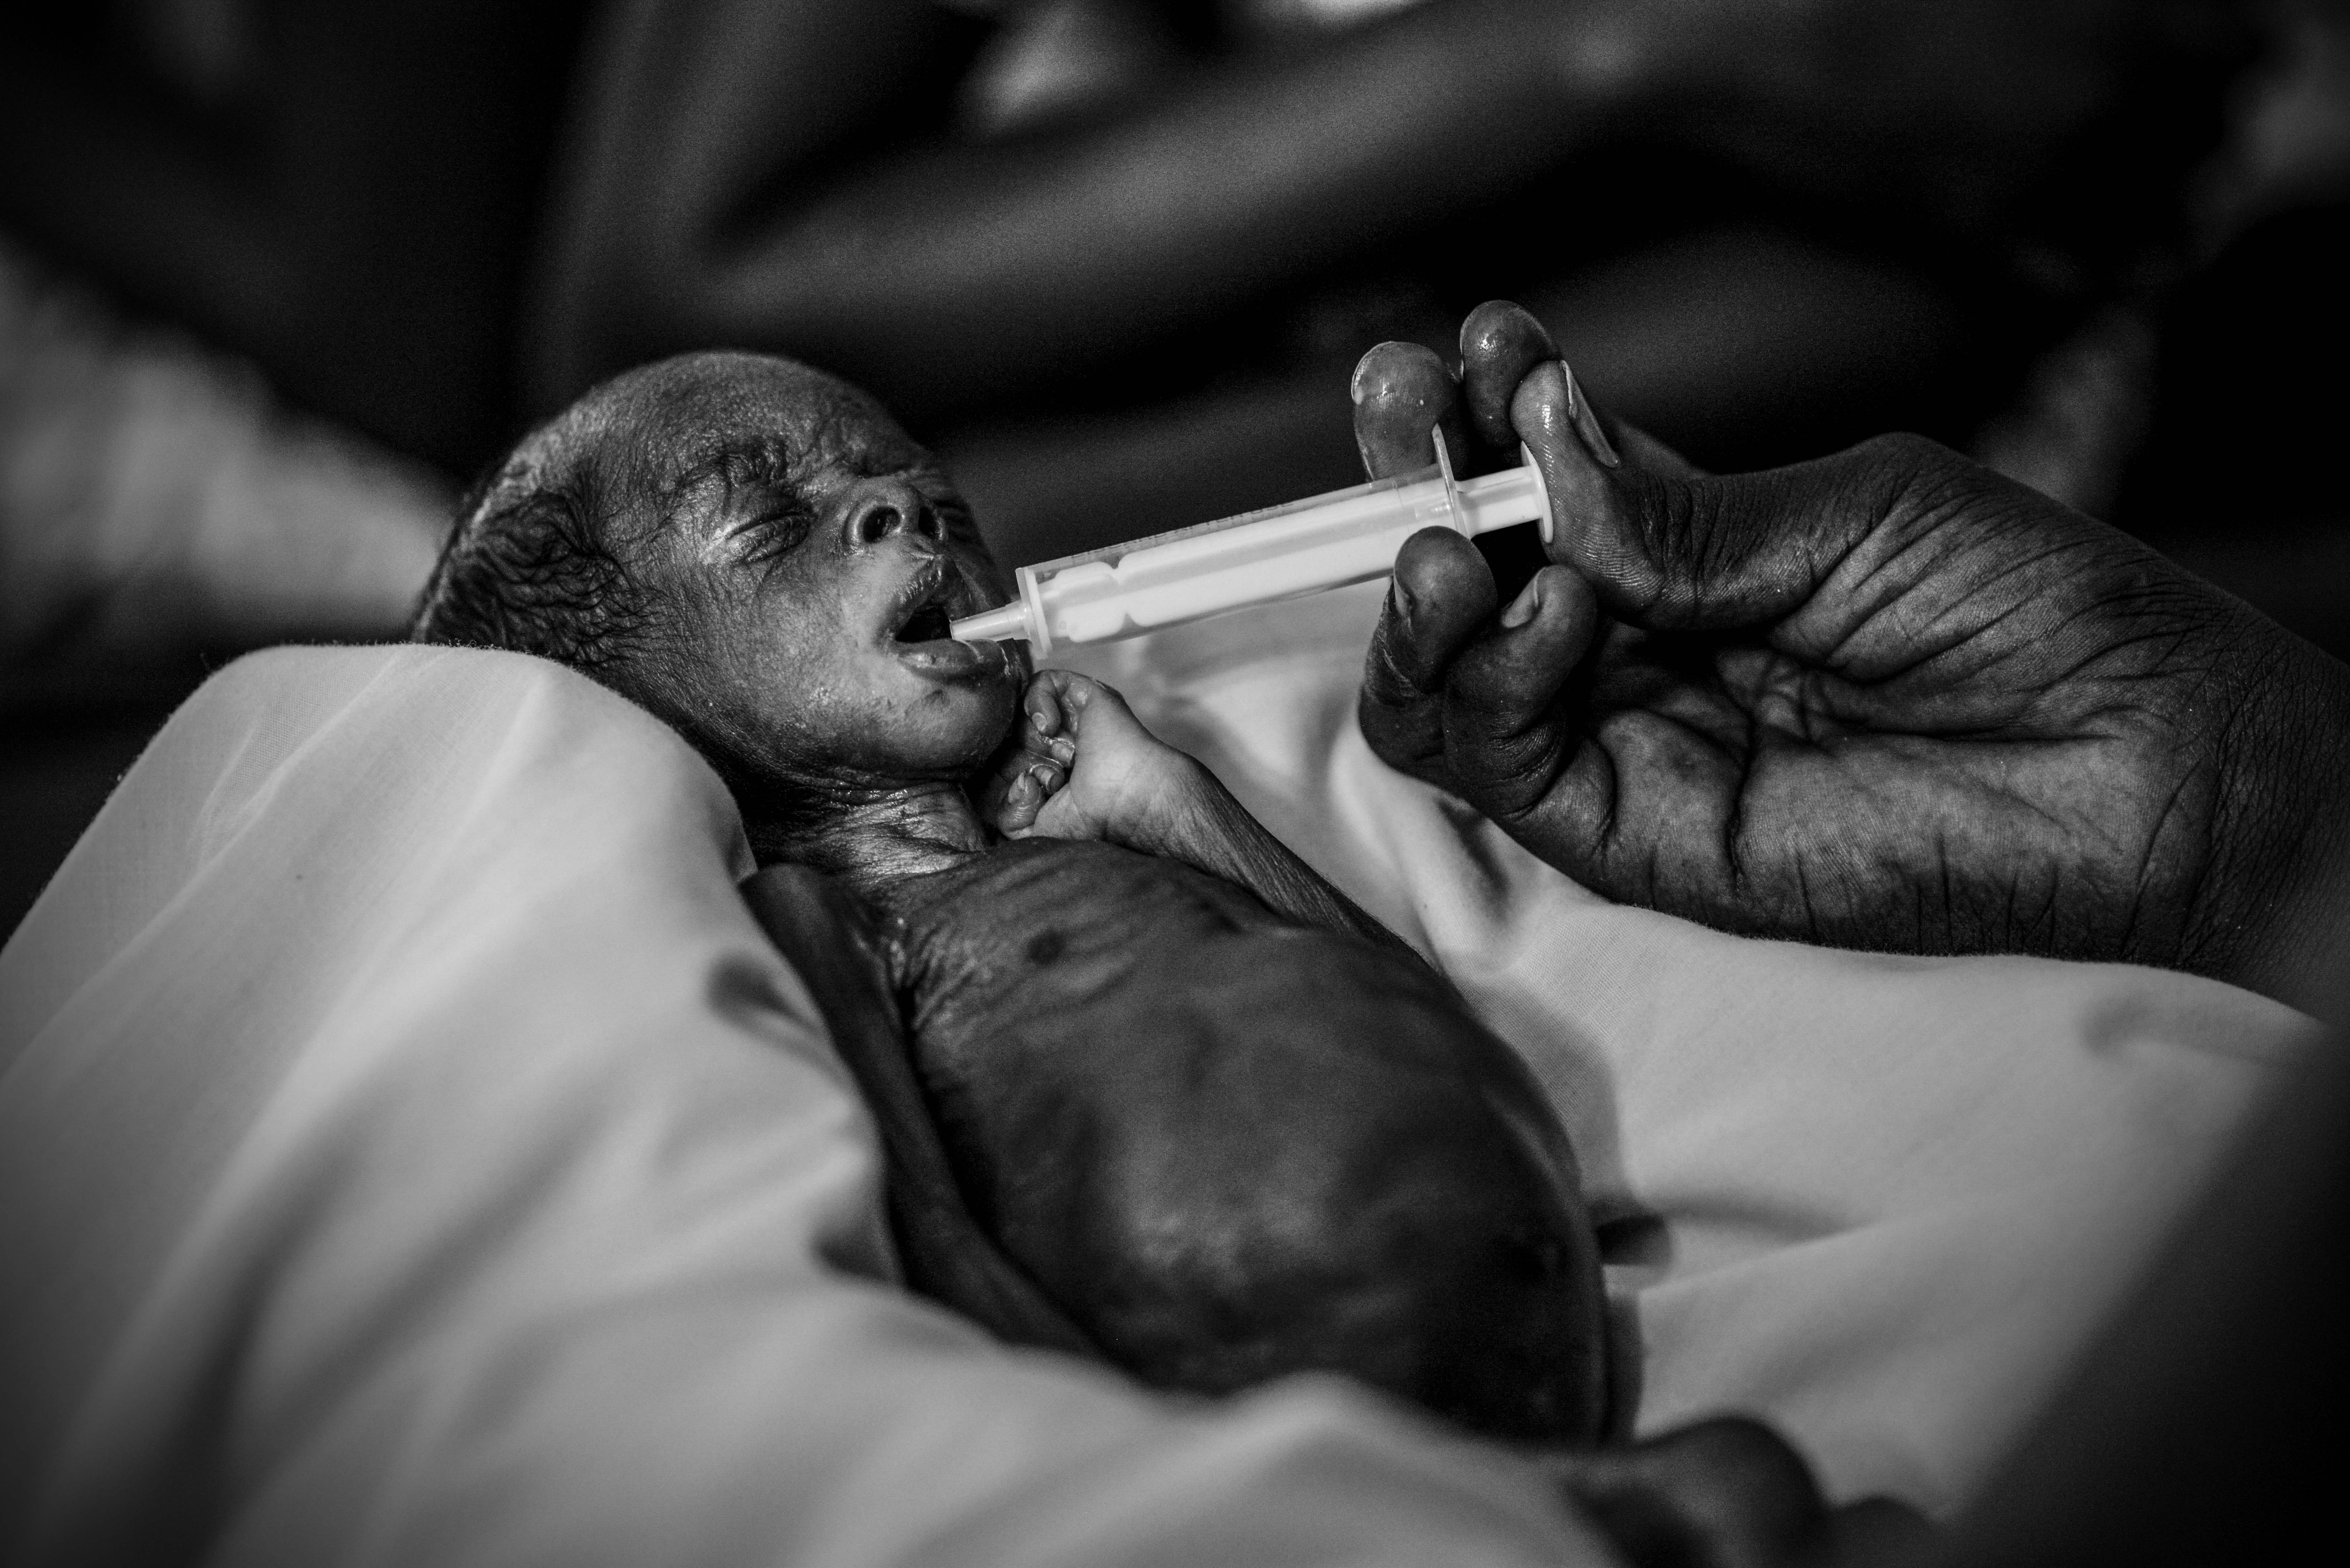 A premature baby is fed baby formula by syringe in a hospital near Juba, South Sudan. Photo by Sebastian Rich for UNICEF